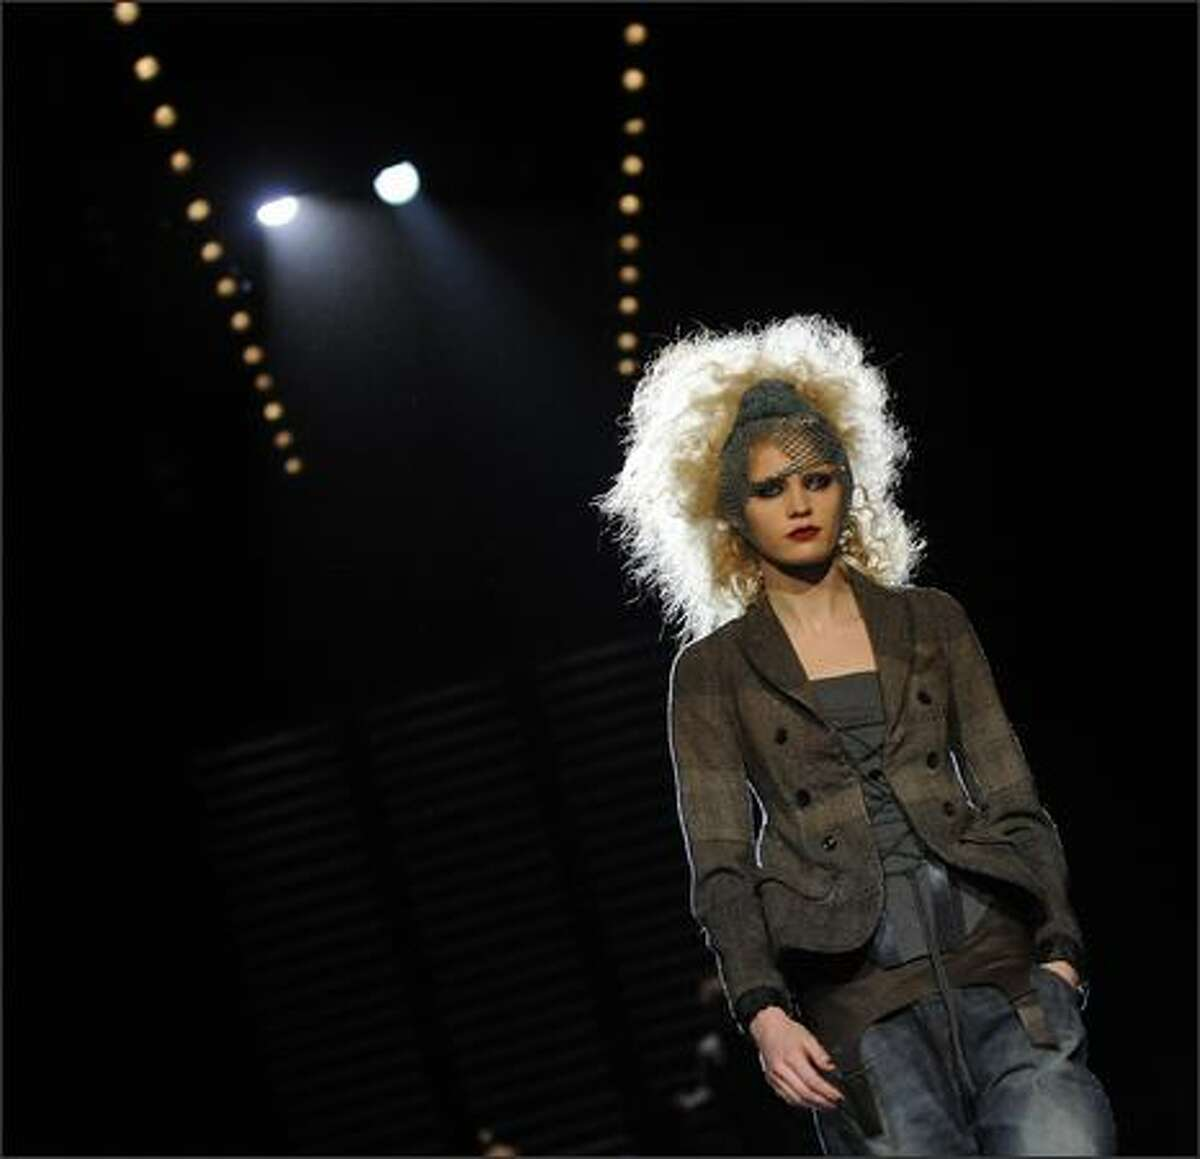 A model displays an outfit of Diesel Black Gold at the 2009 Fall Shows at Bryant park during Mercedes Benz Fashion Week in New York.